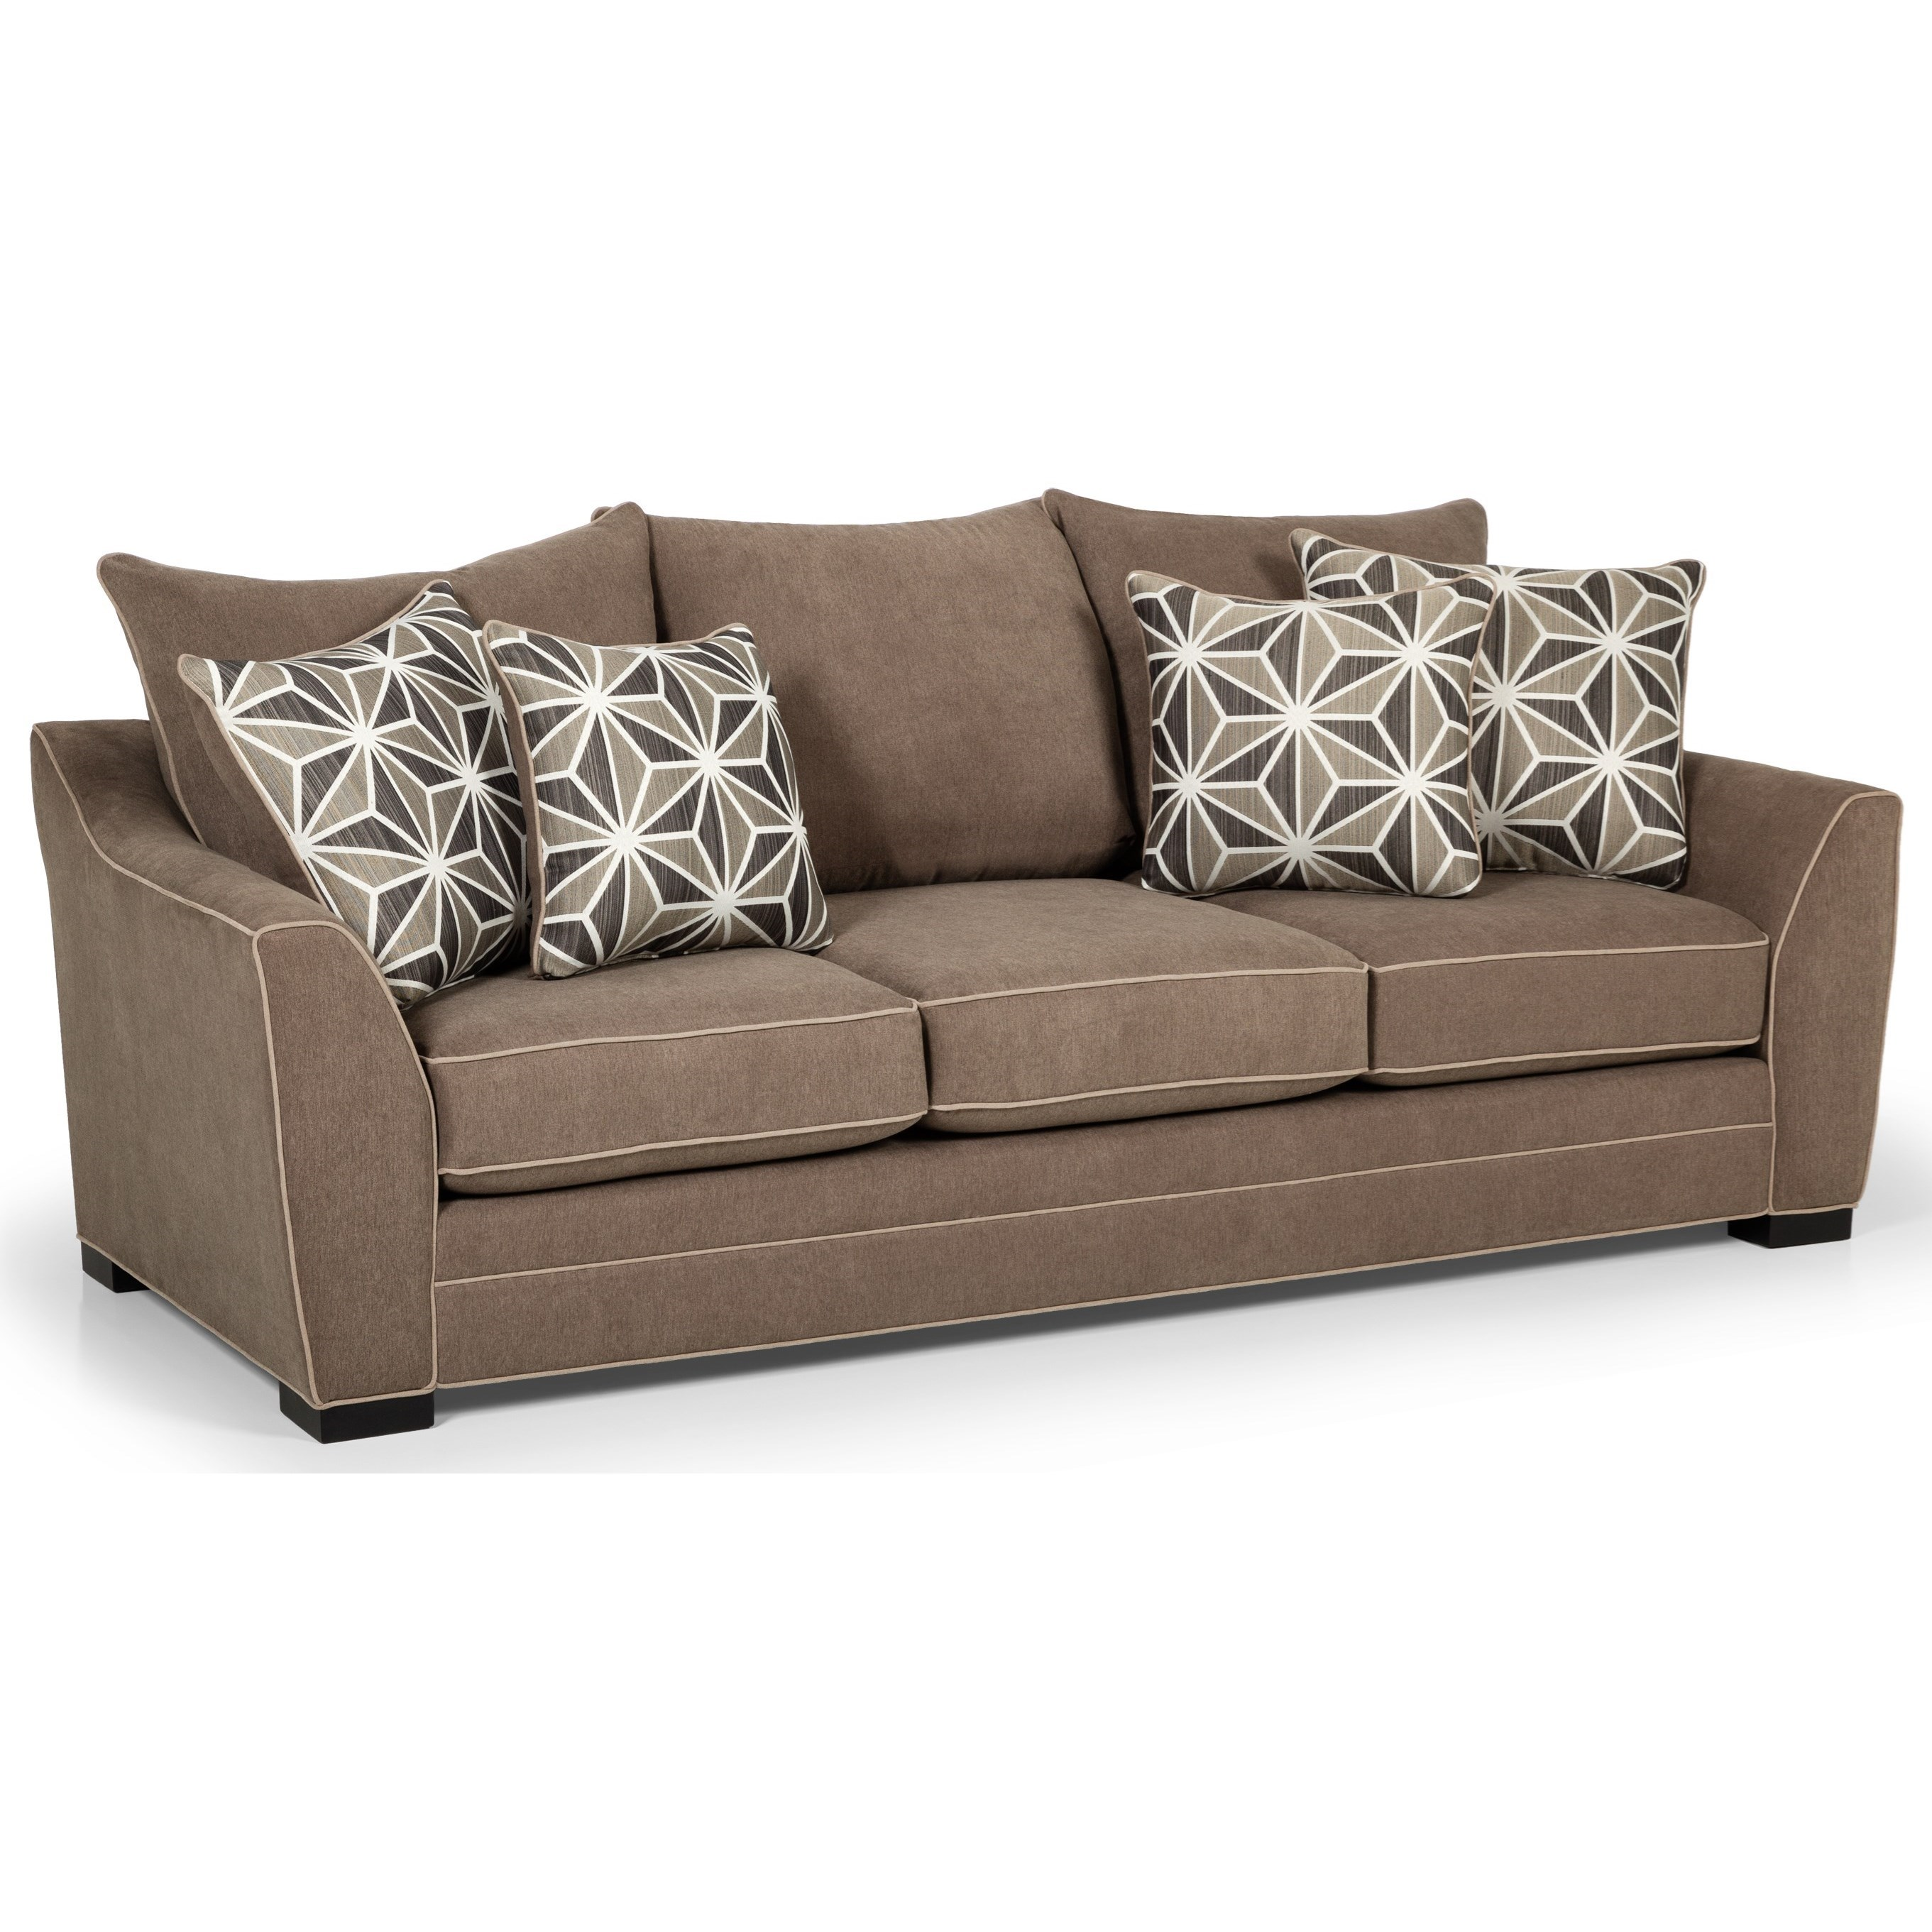 Sofa Welt Stanton 378 Casual Sofa With Welt Cord Trim Wilson 39s